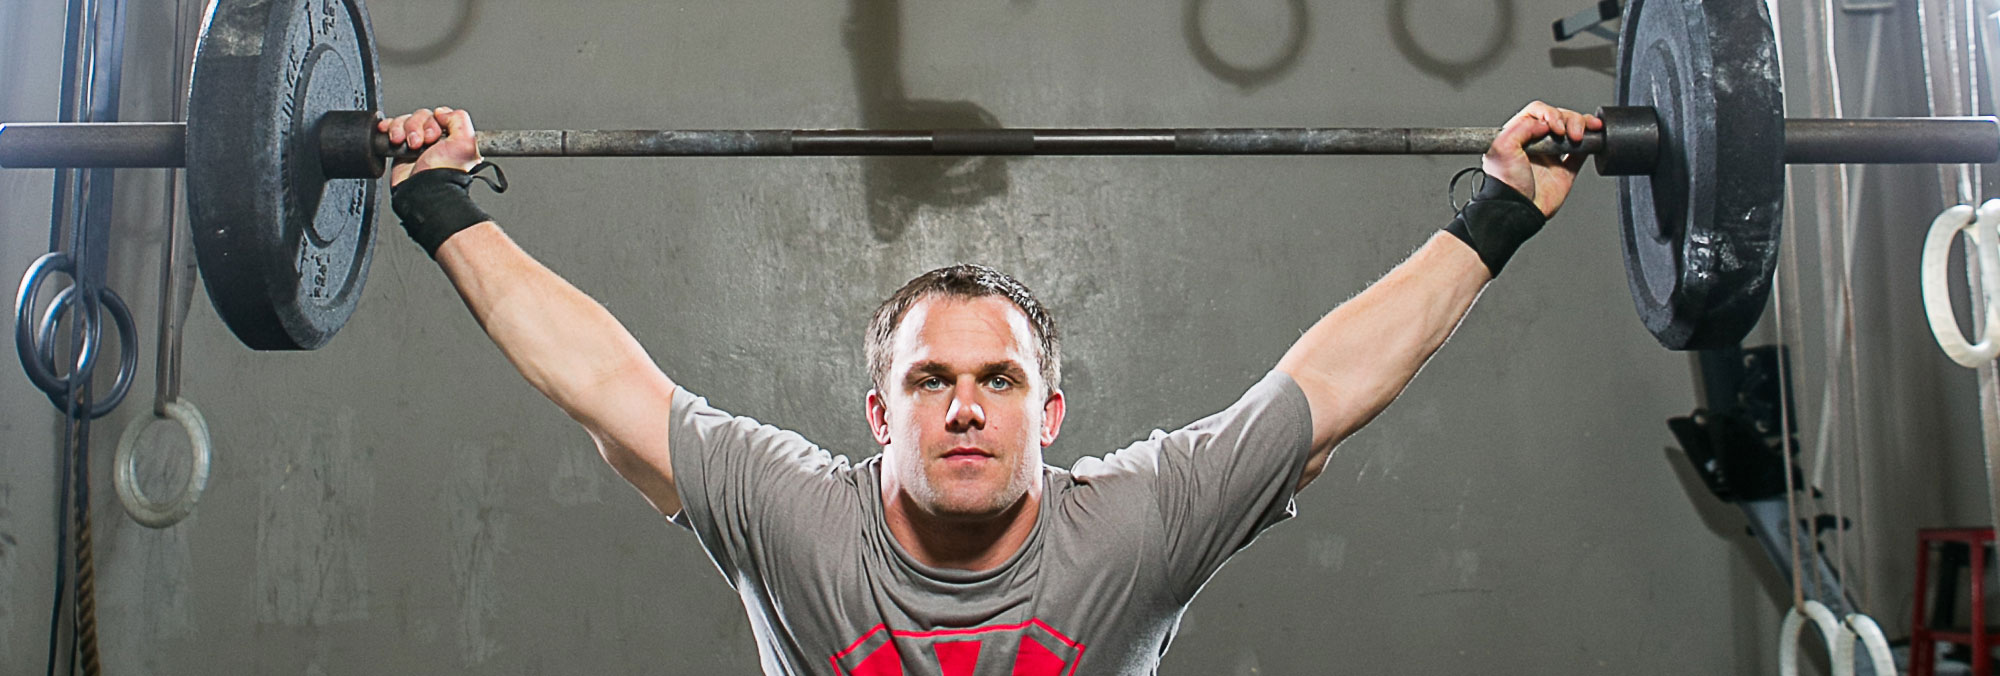 San Diego's Best Crossfit Training Gym